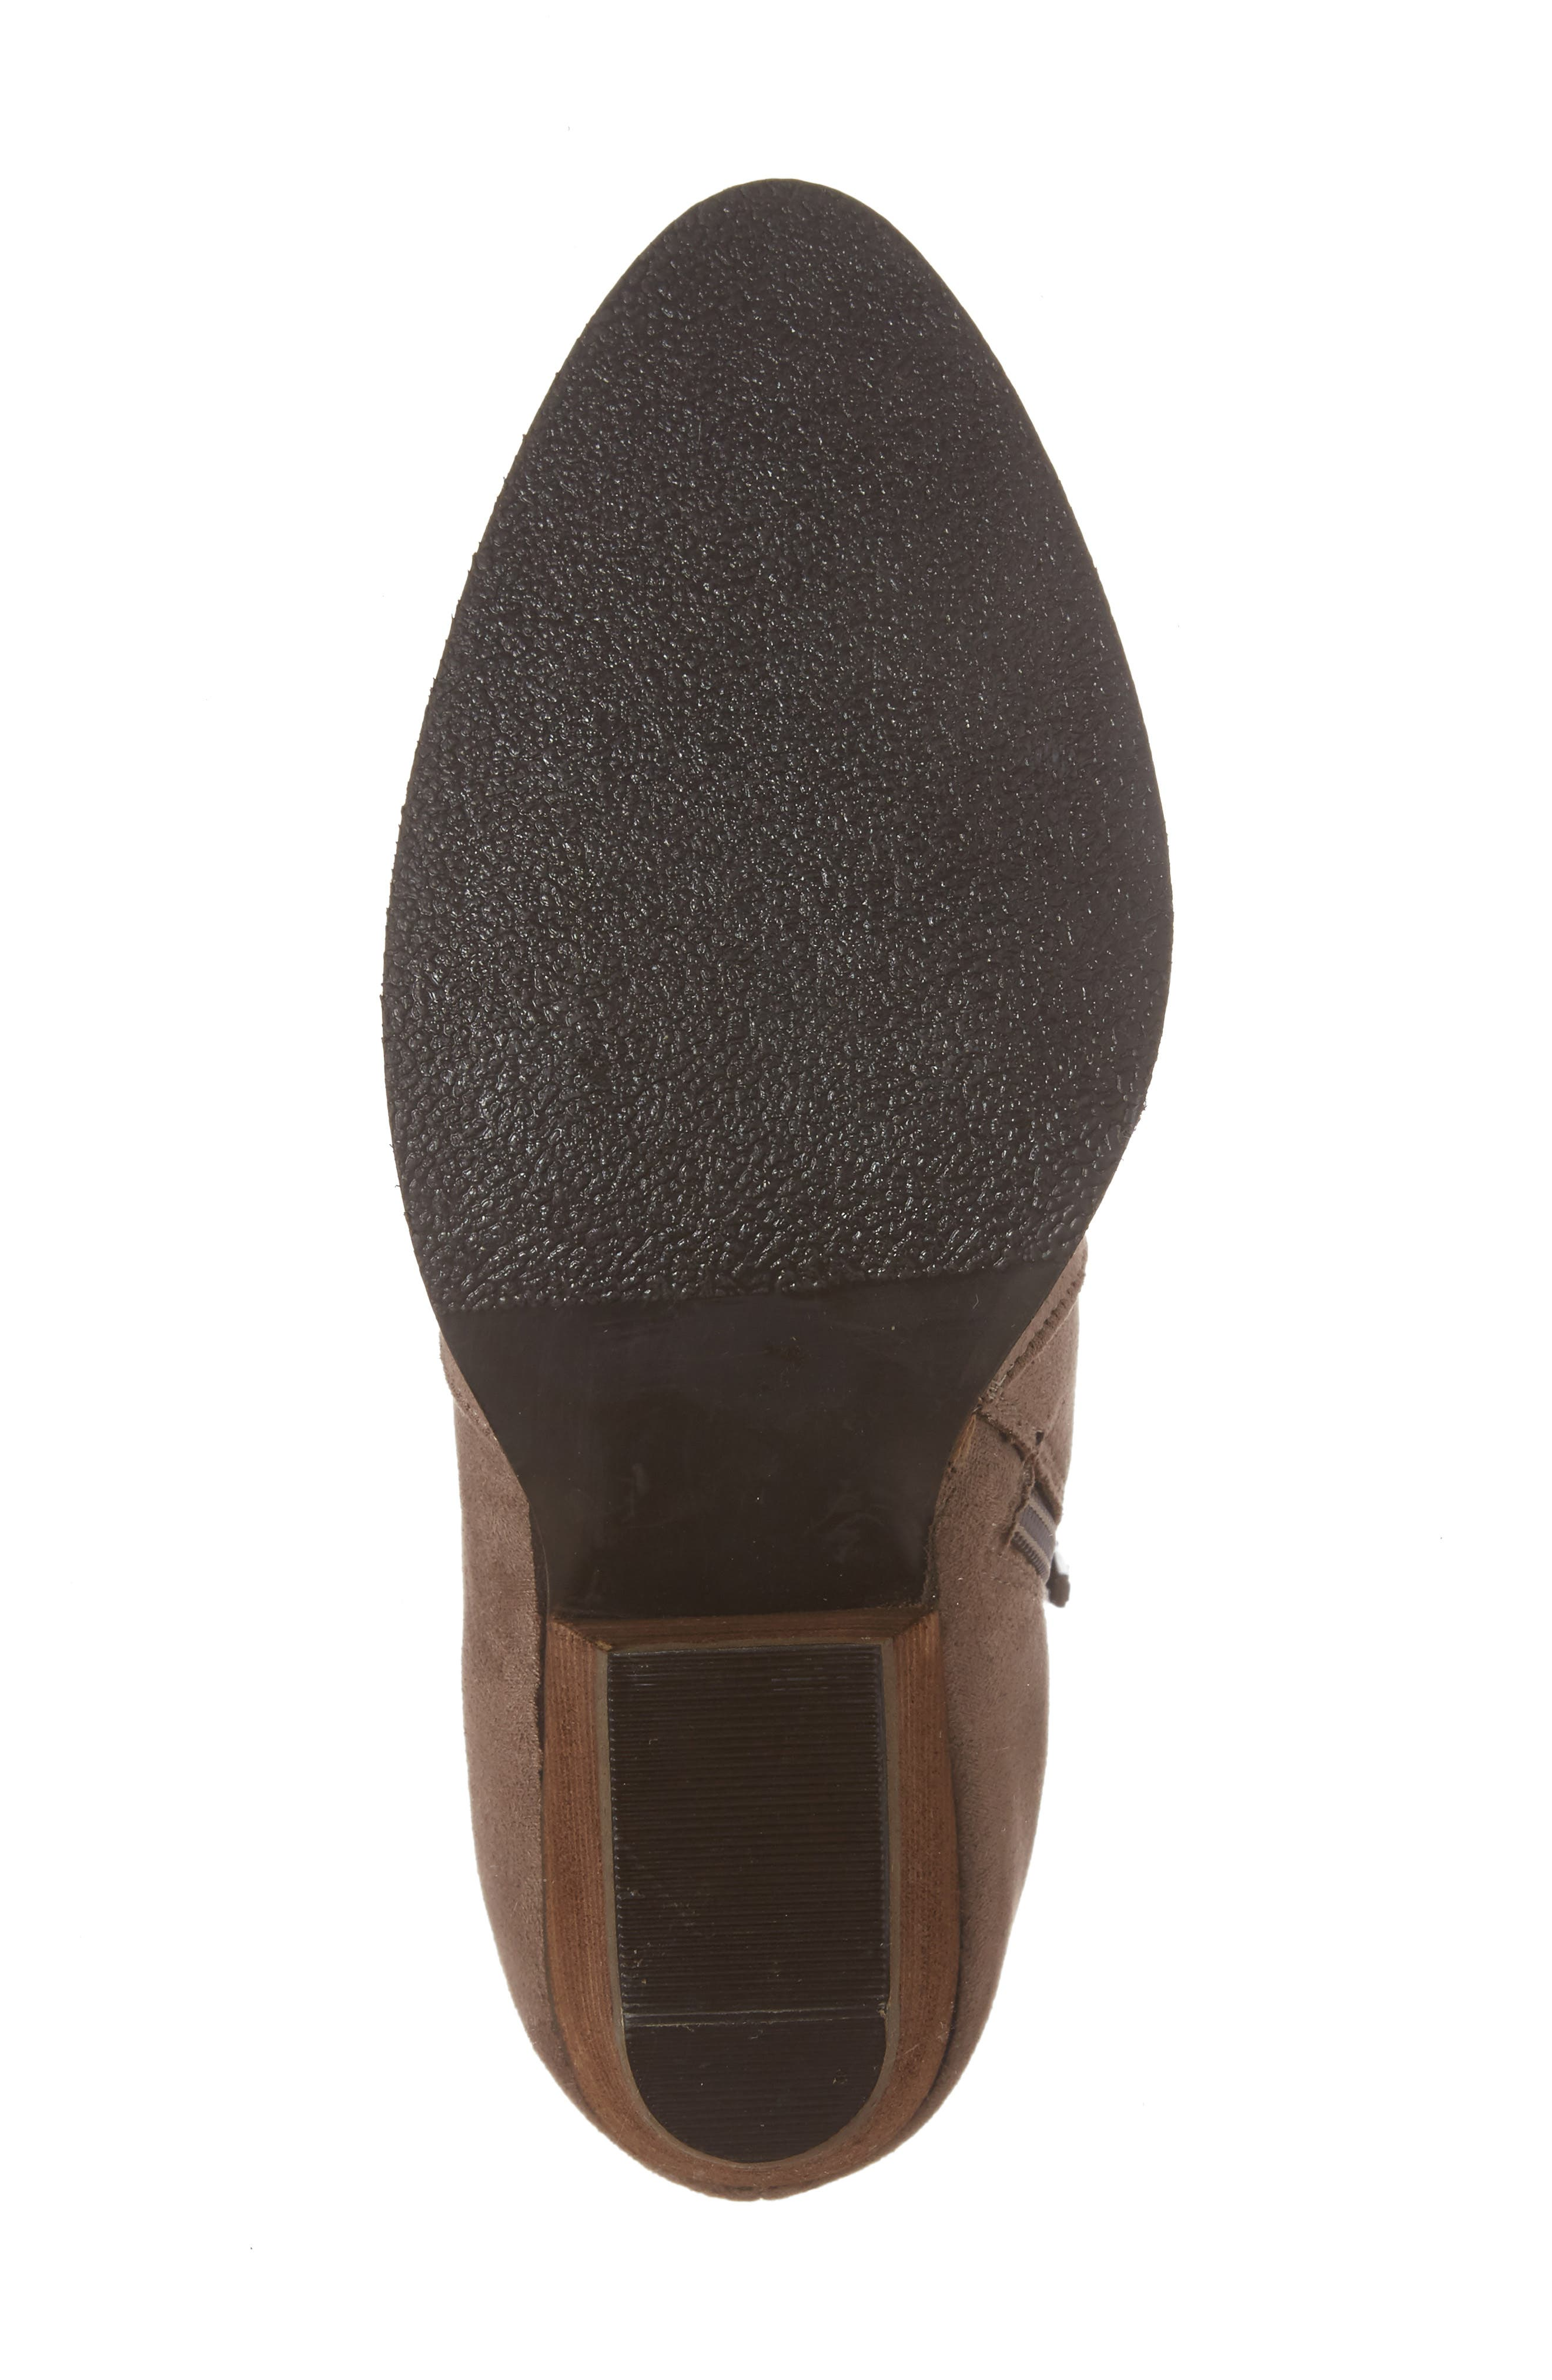 Axis Embroidered Bootie,                             Alternate thumbnail 6, color,                             Taupe Suede